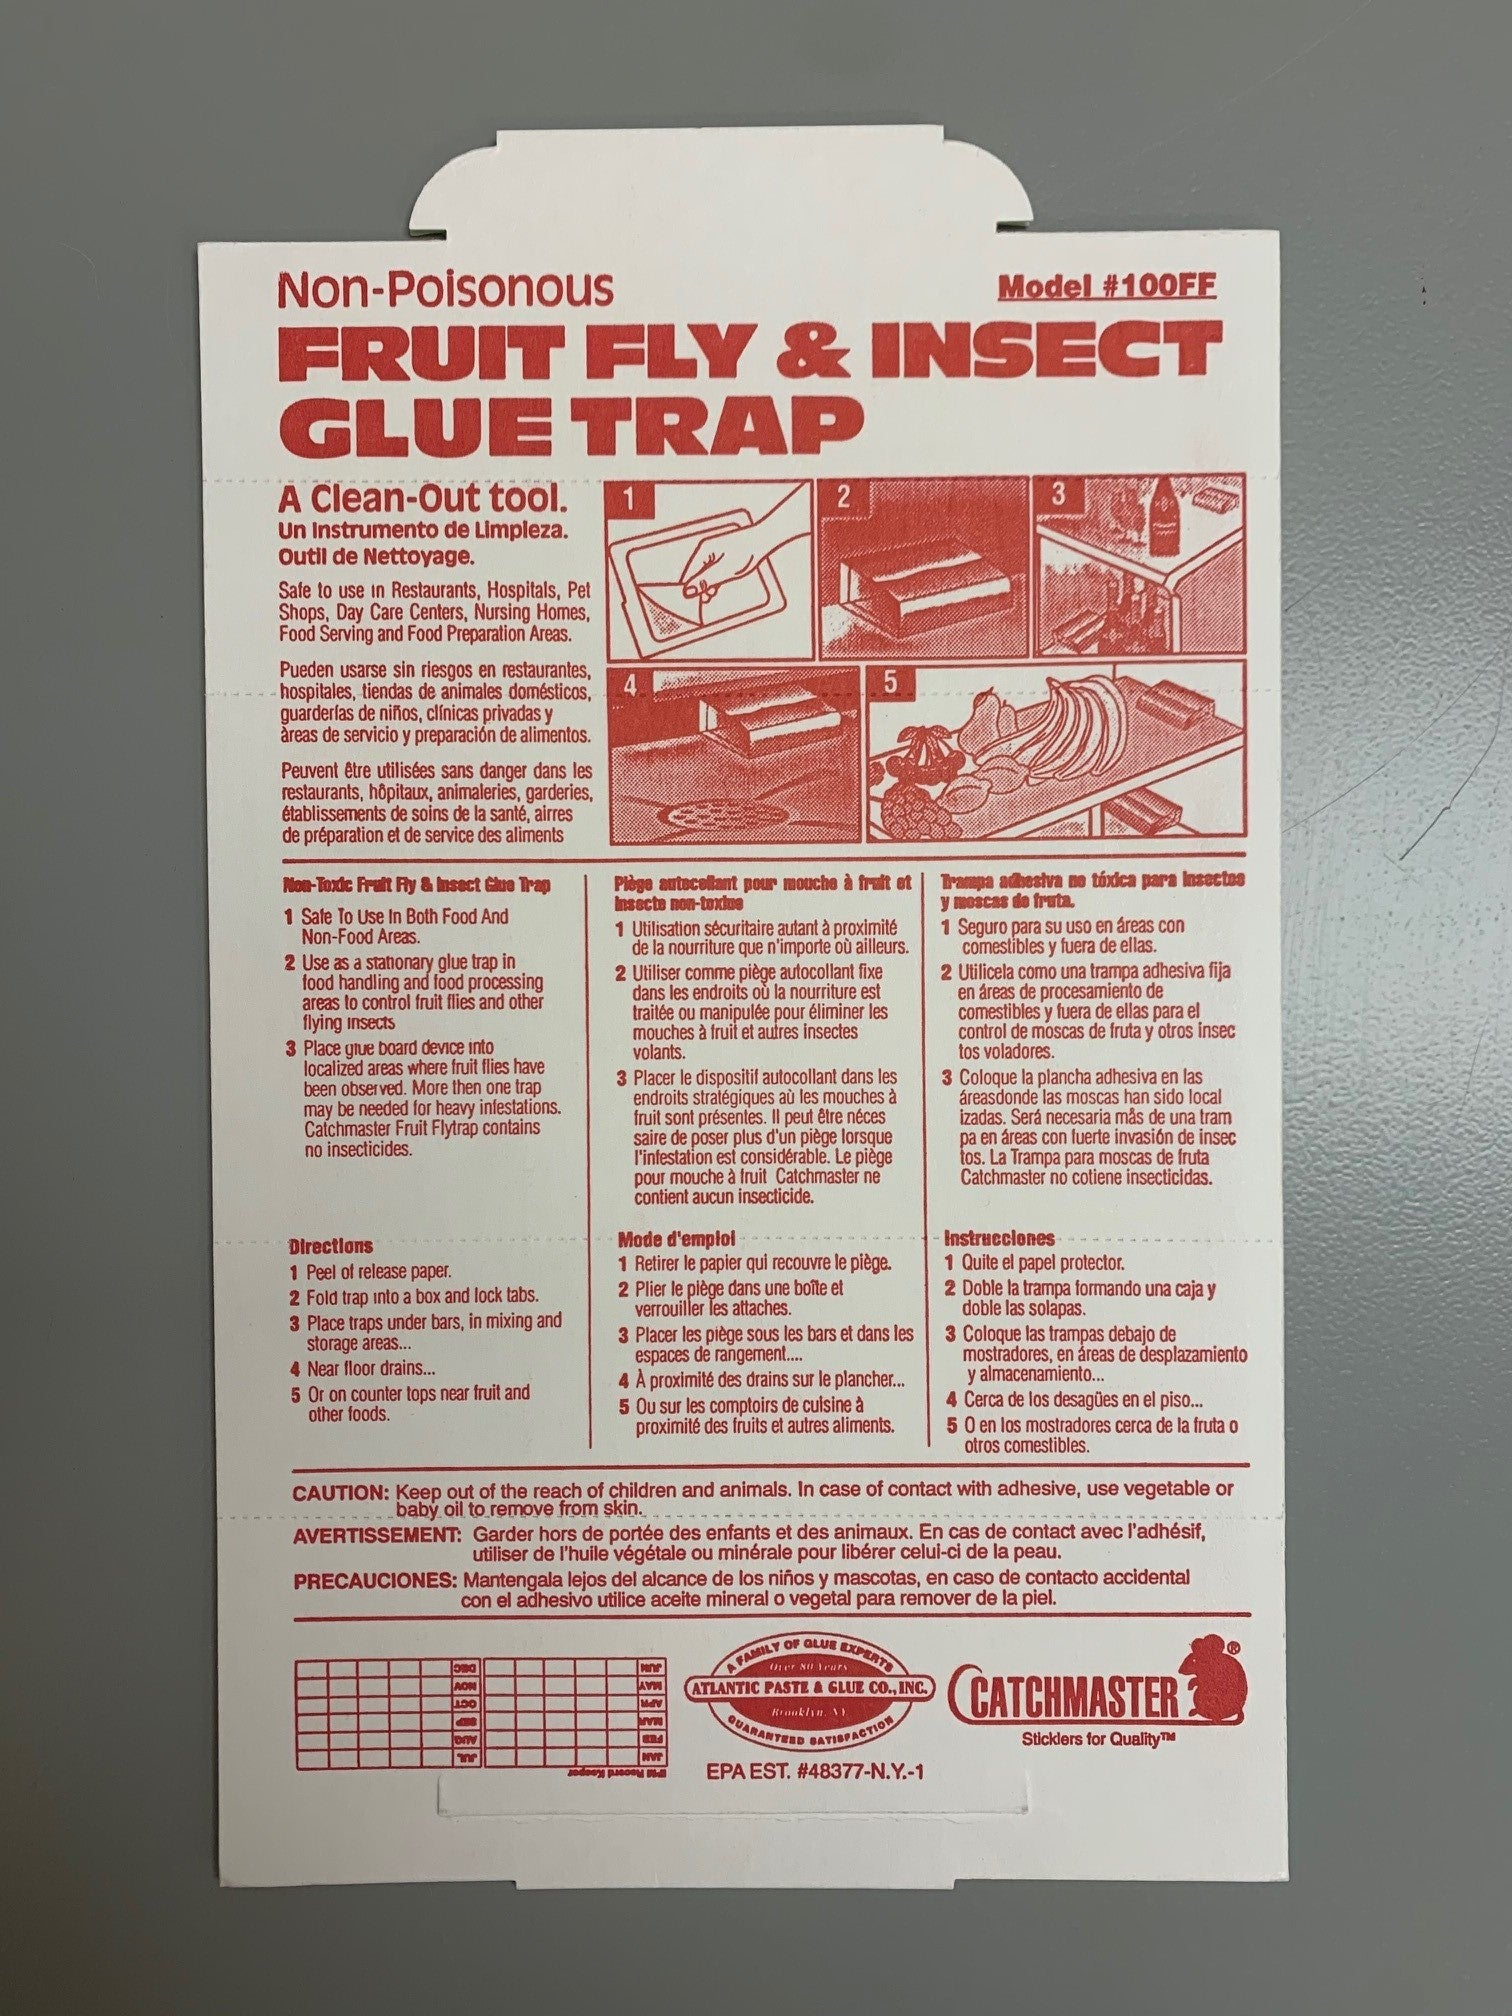 Catchmaster Fruit Fly & Insect Glue Trap